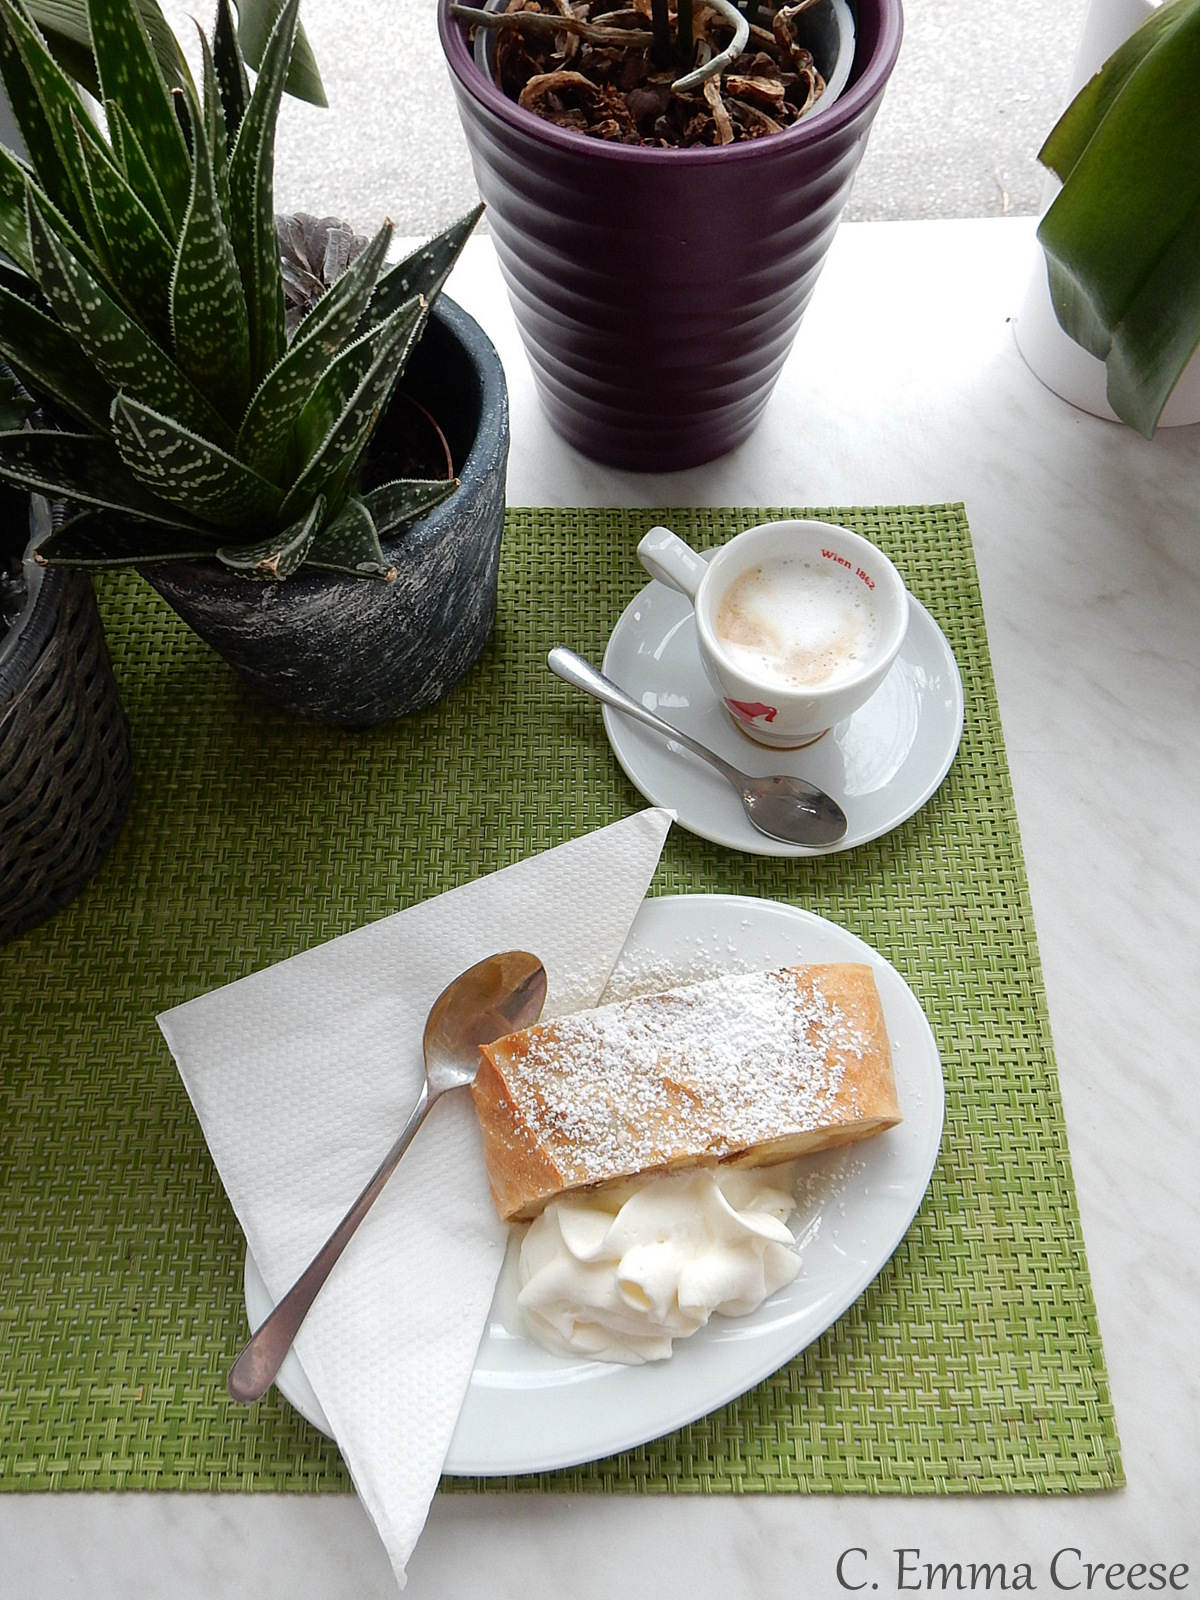 Where to find the best schitznel and cake in Vienna*